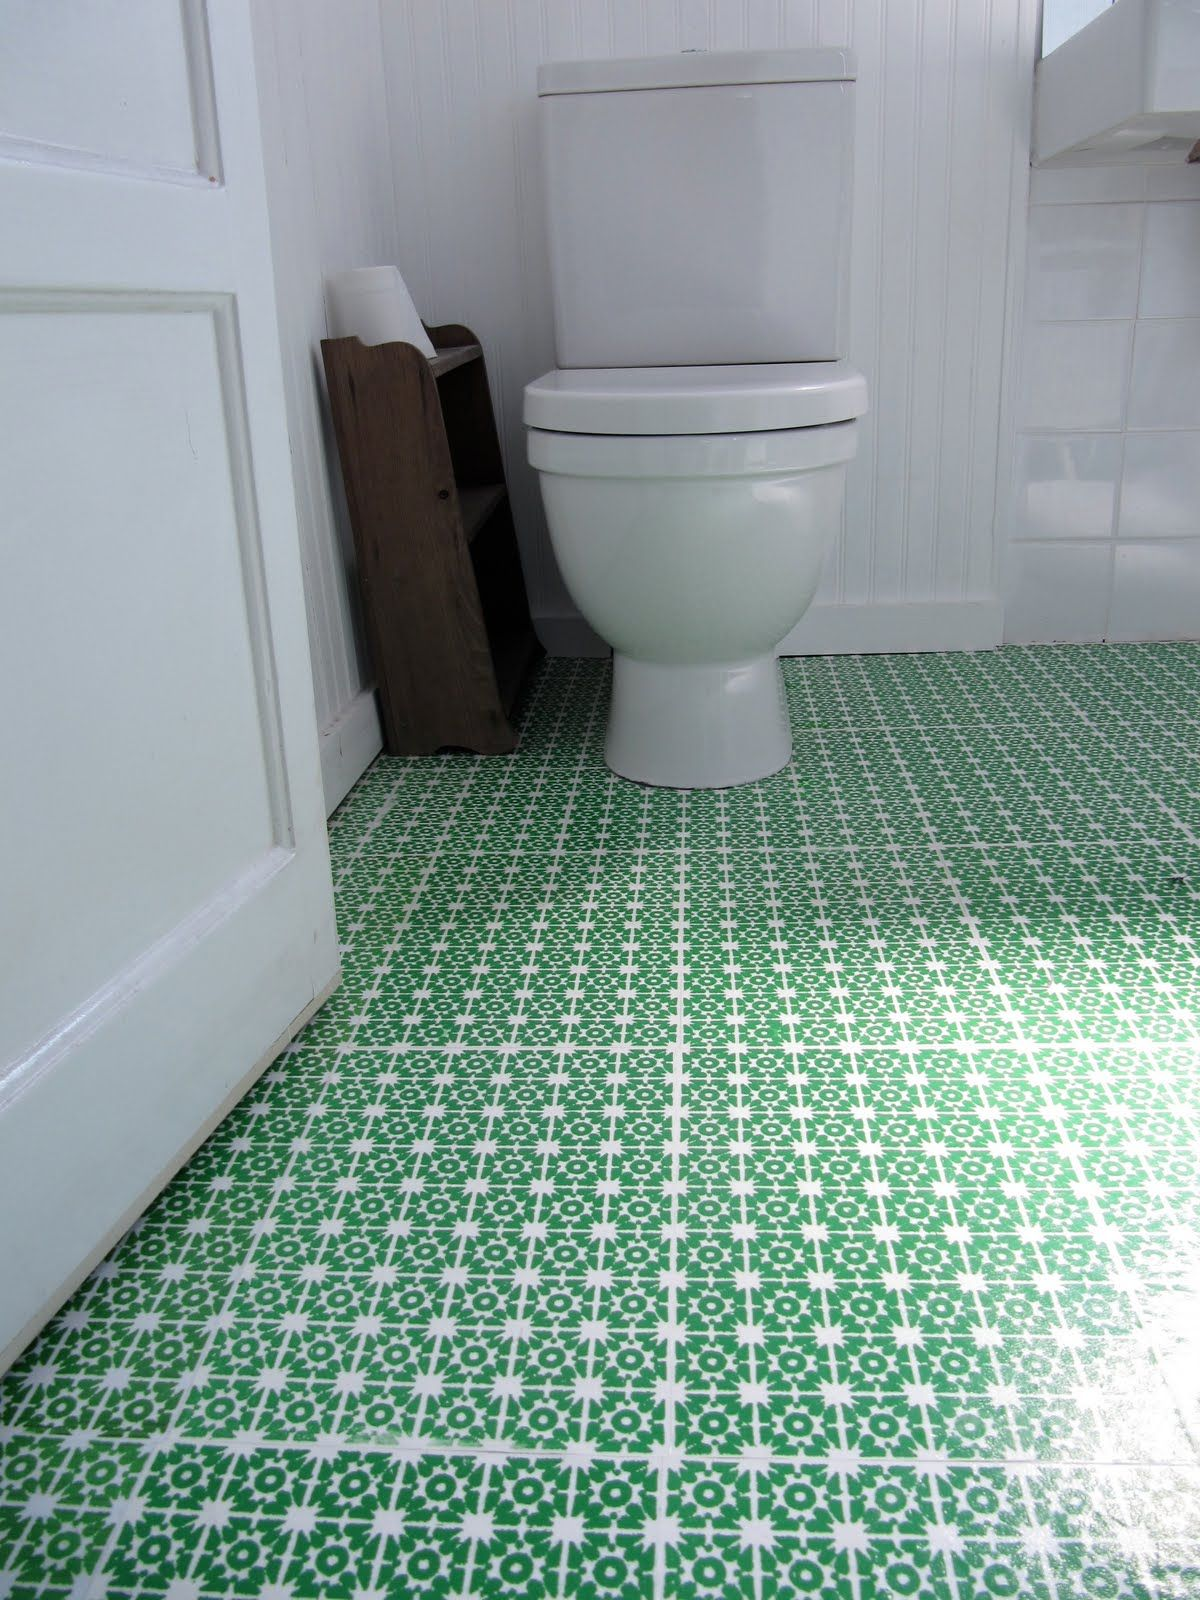 Cozy bathroom vinyl flooring installing bathroom vinyl flooring